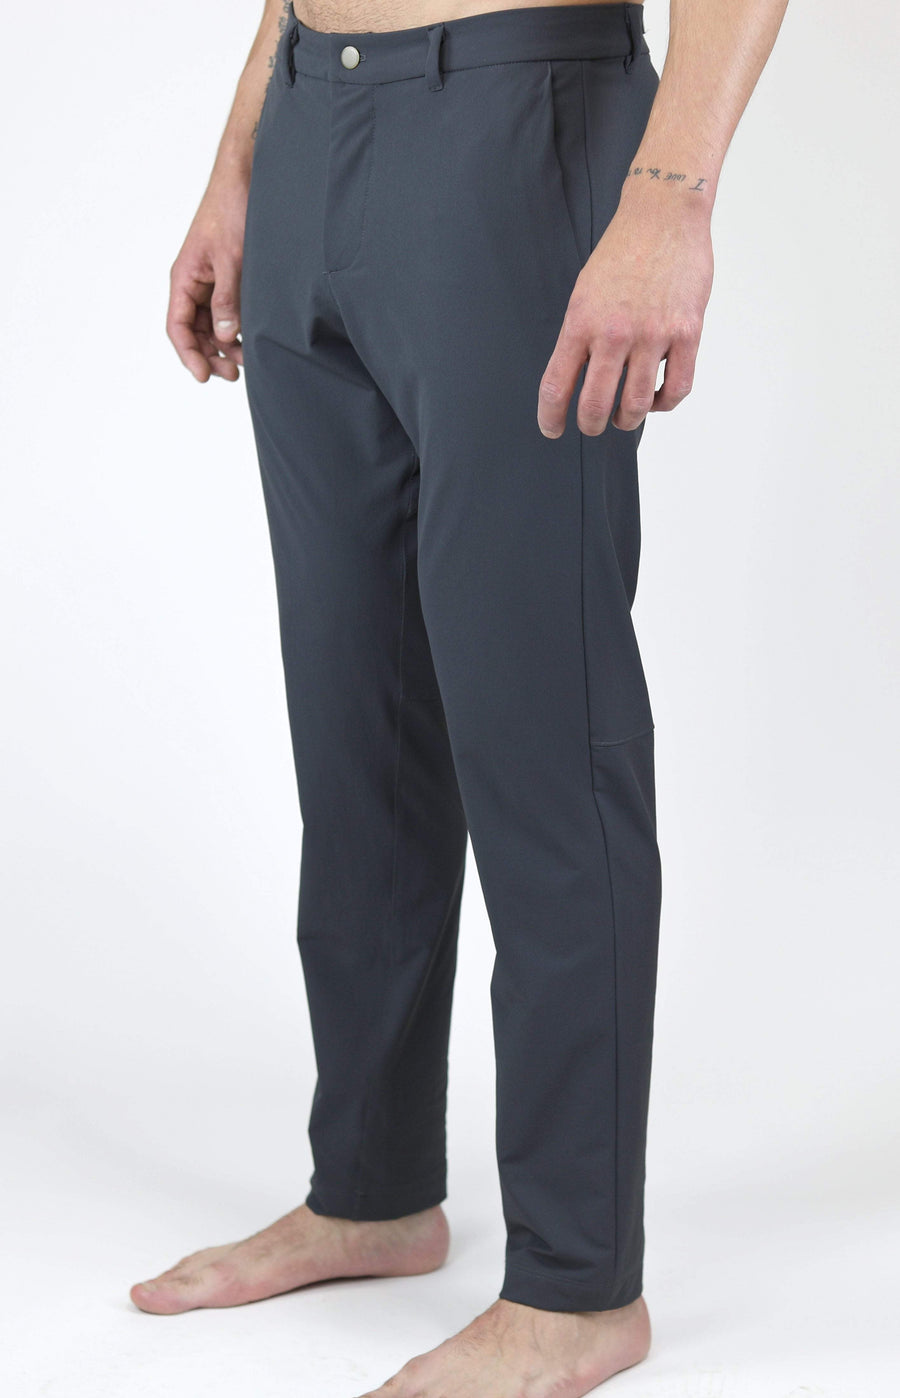 The Action Pant